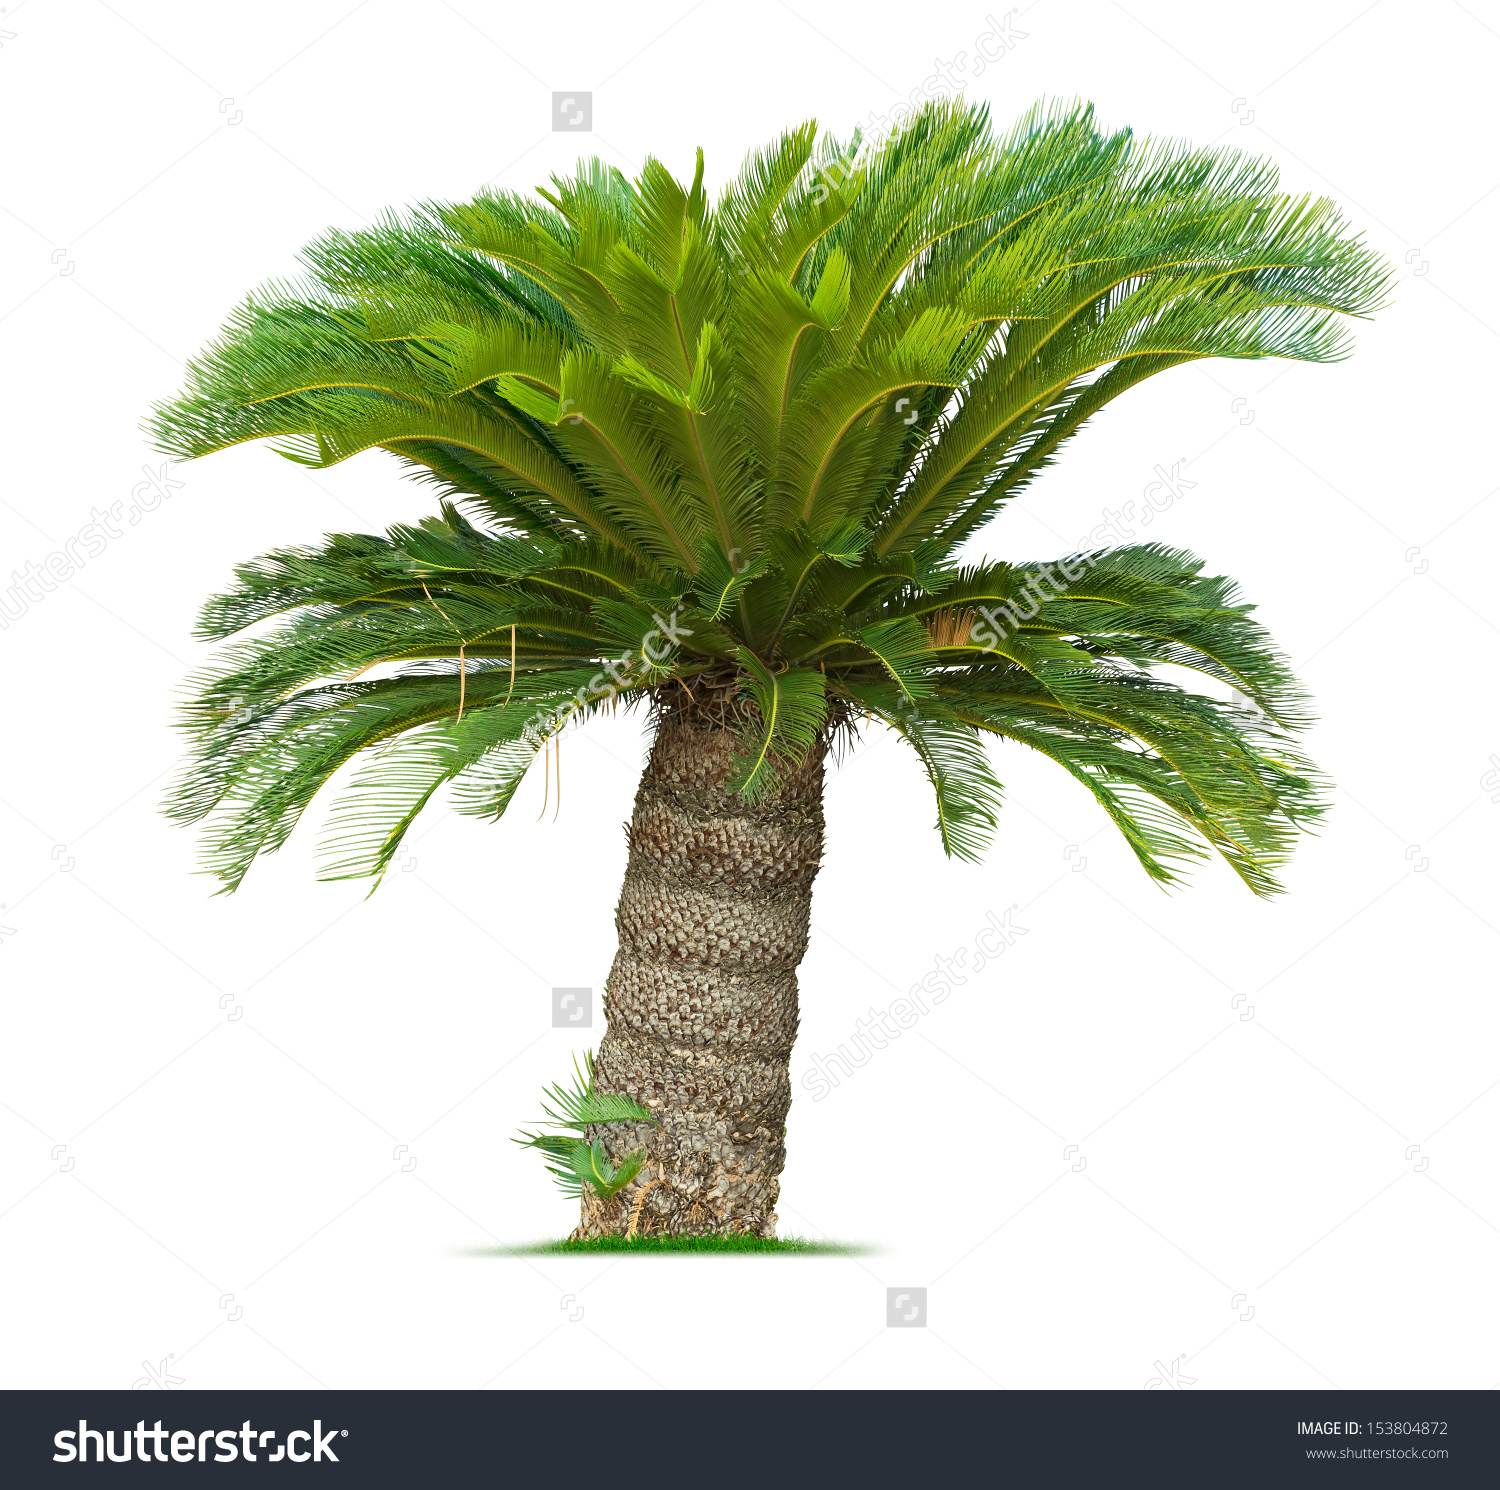 Cycad Palm Tree Isolated On White Stock Photo 153804872.